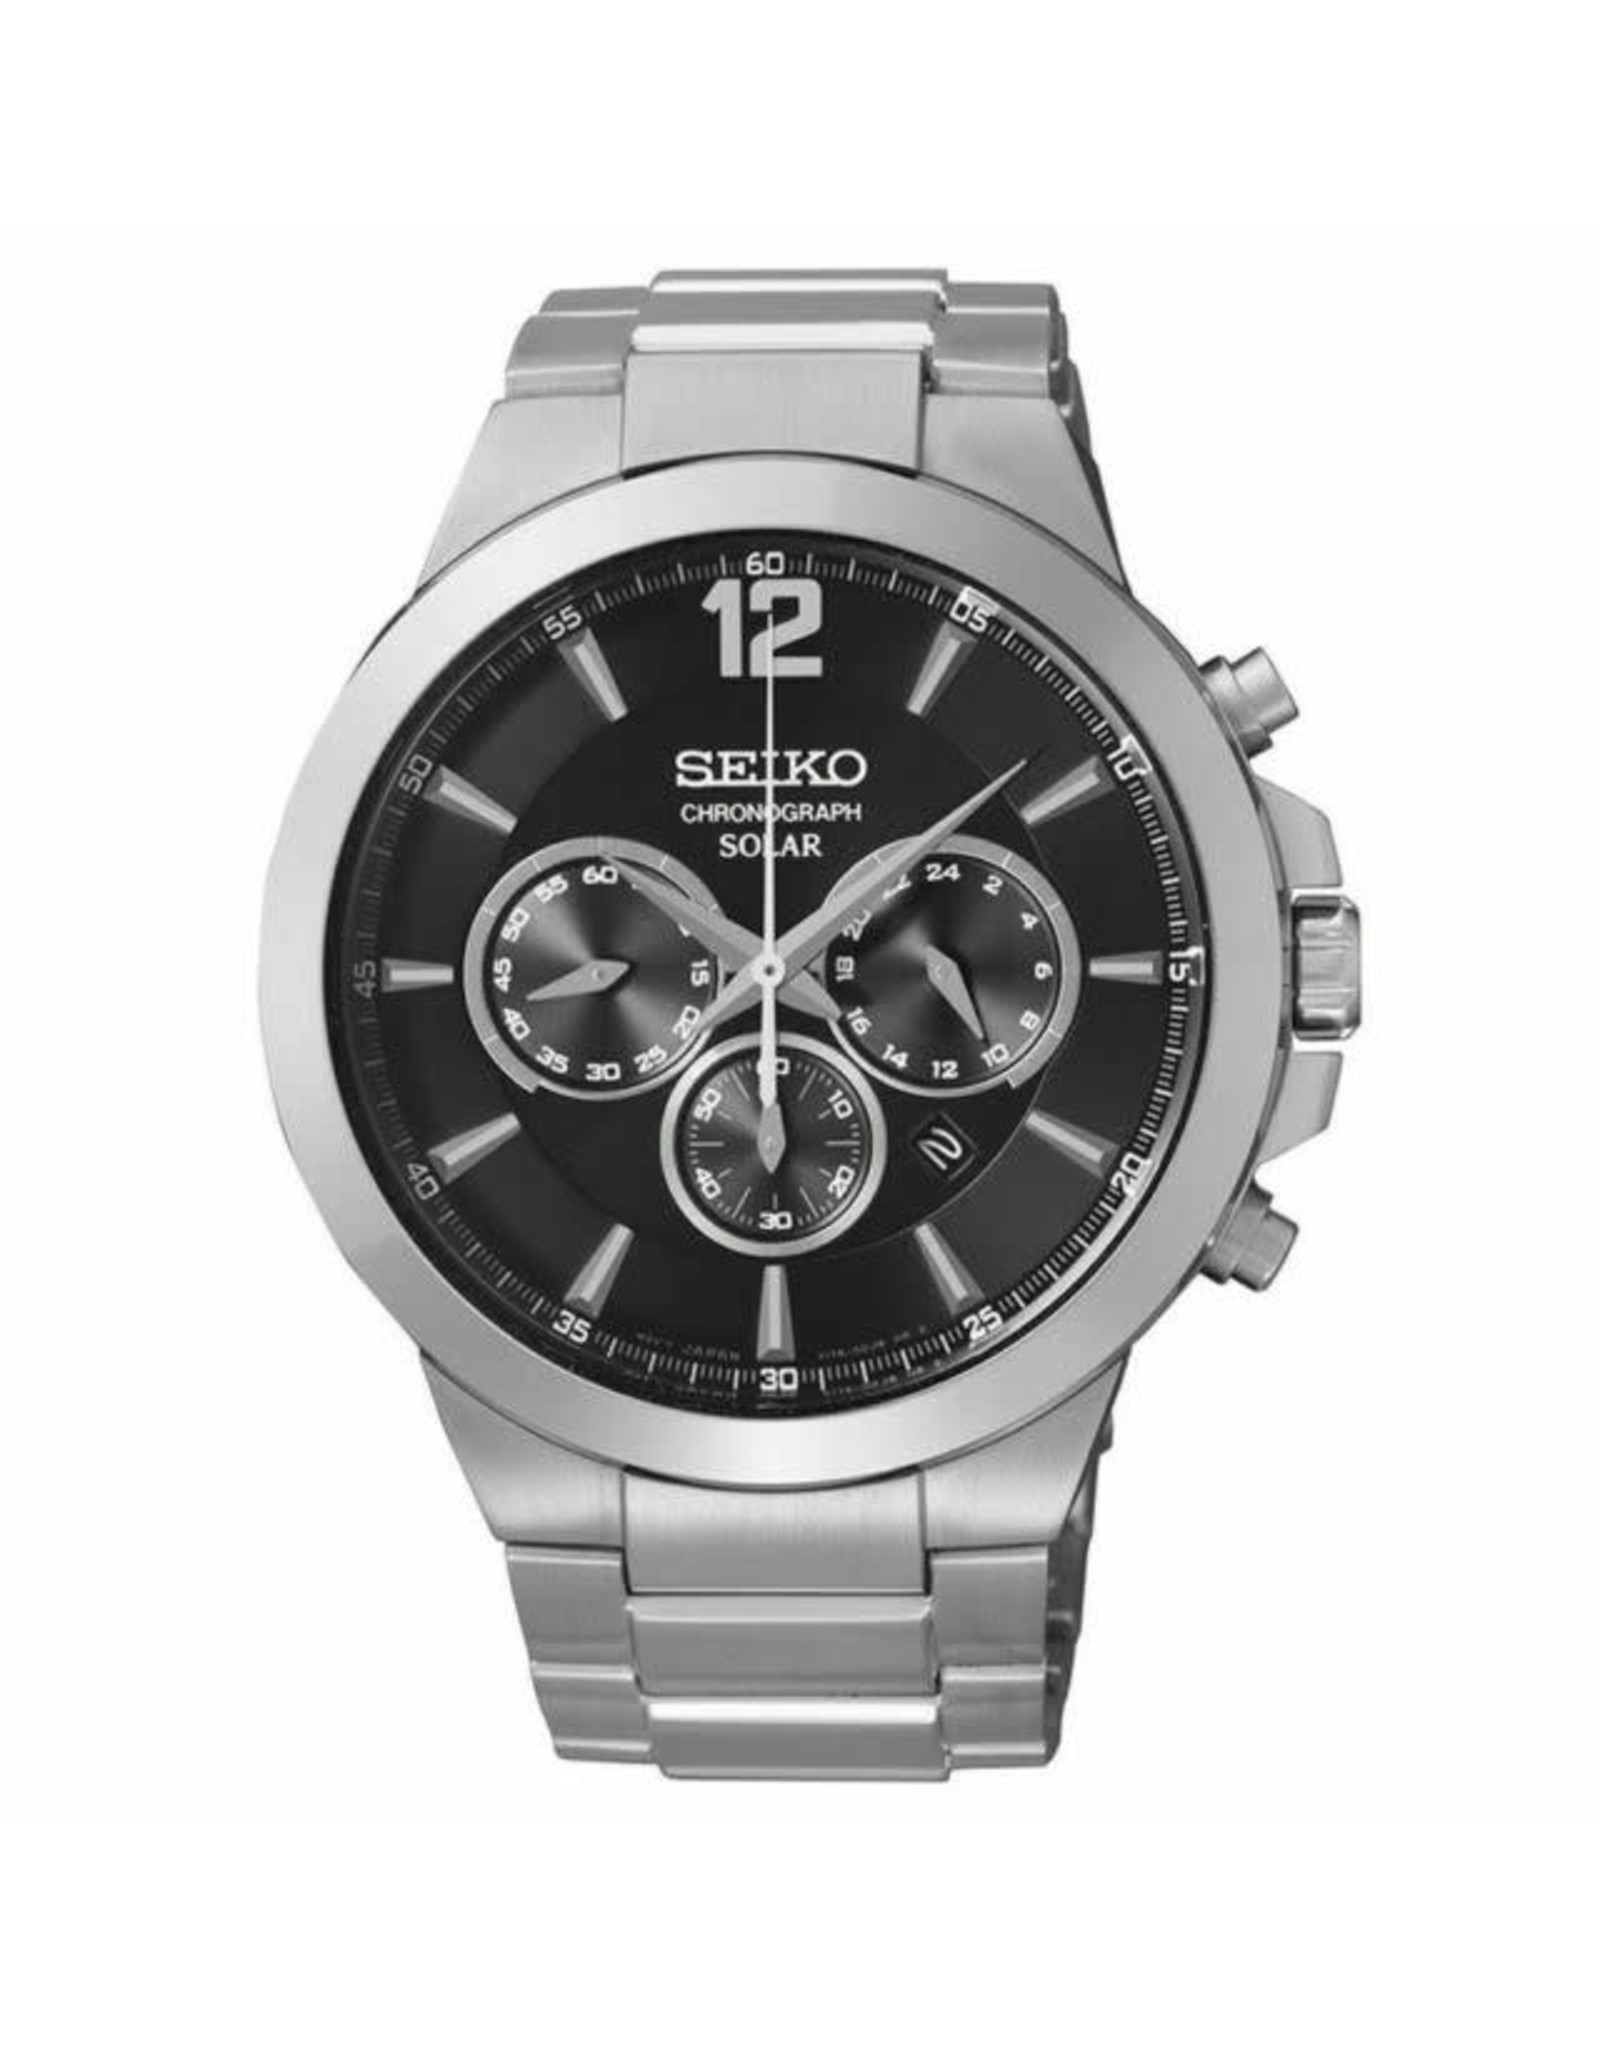 Mens Seiko Solar Chronograph Watch with Stainless Steel Band, 45mm